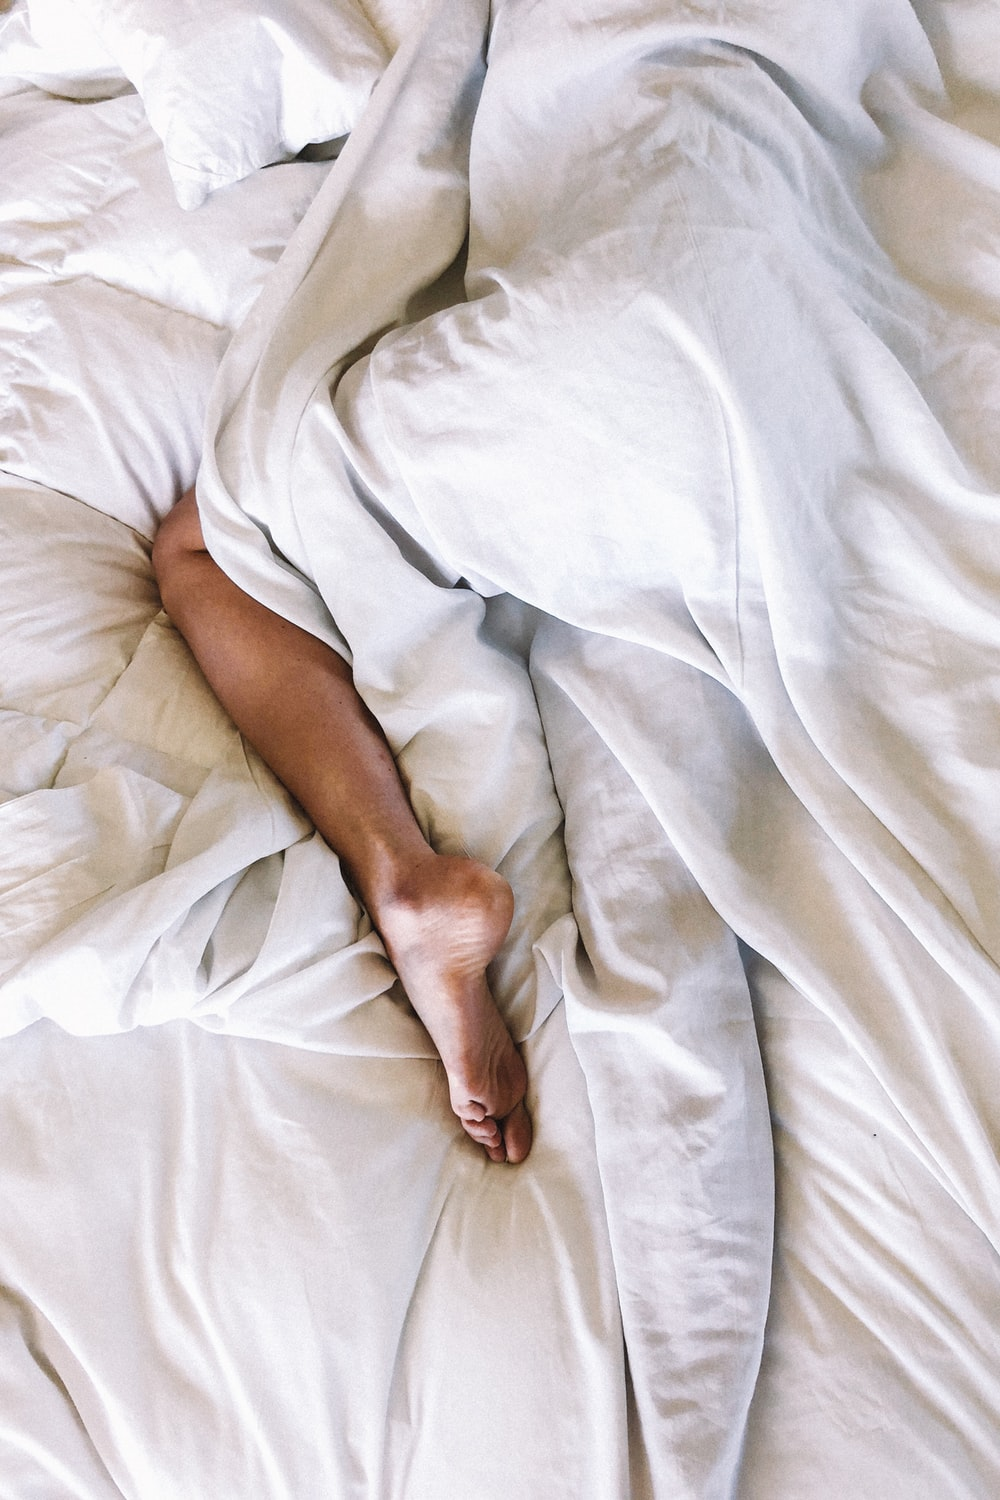 woman covered with white blanket